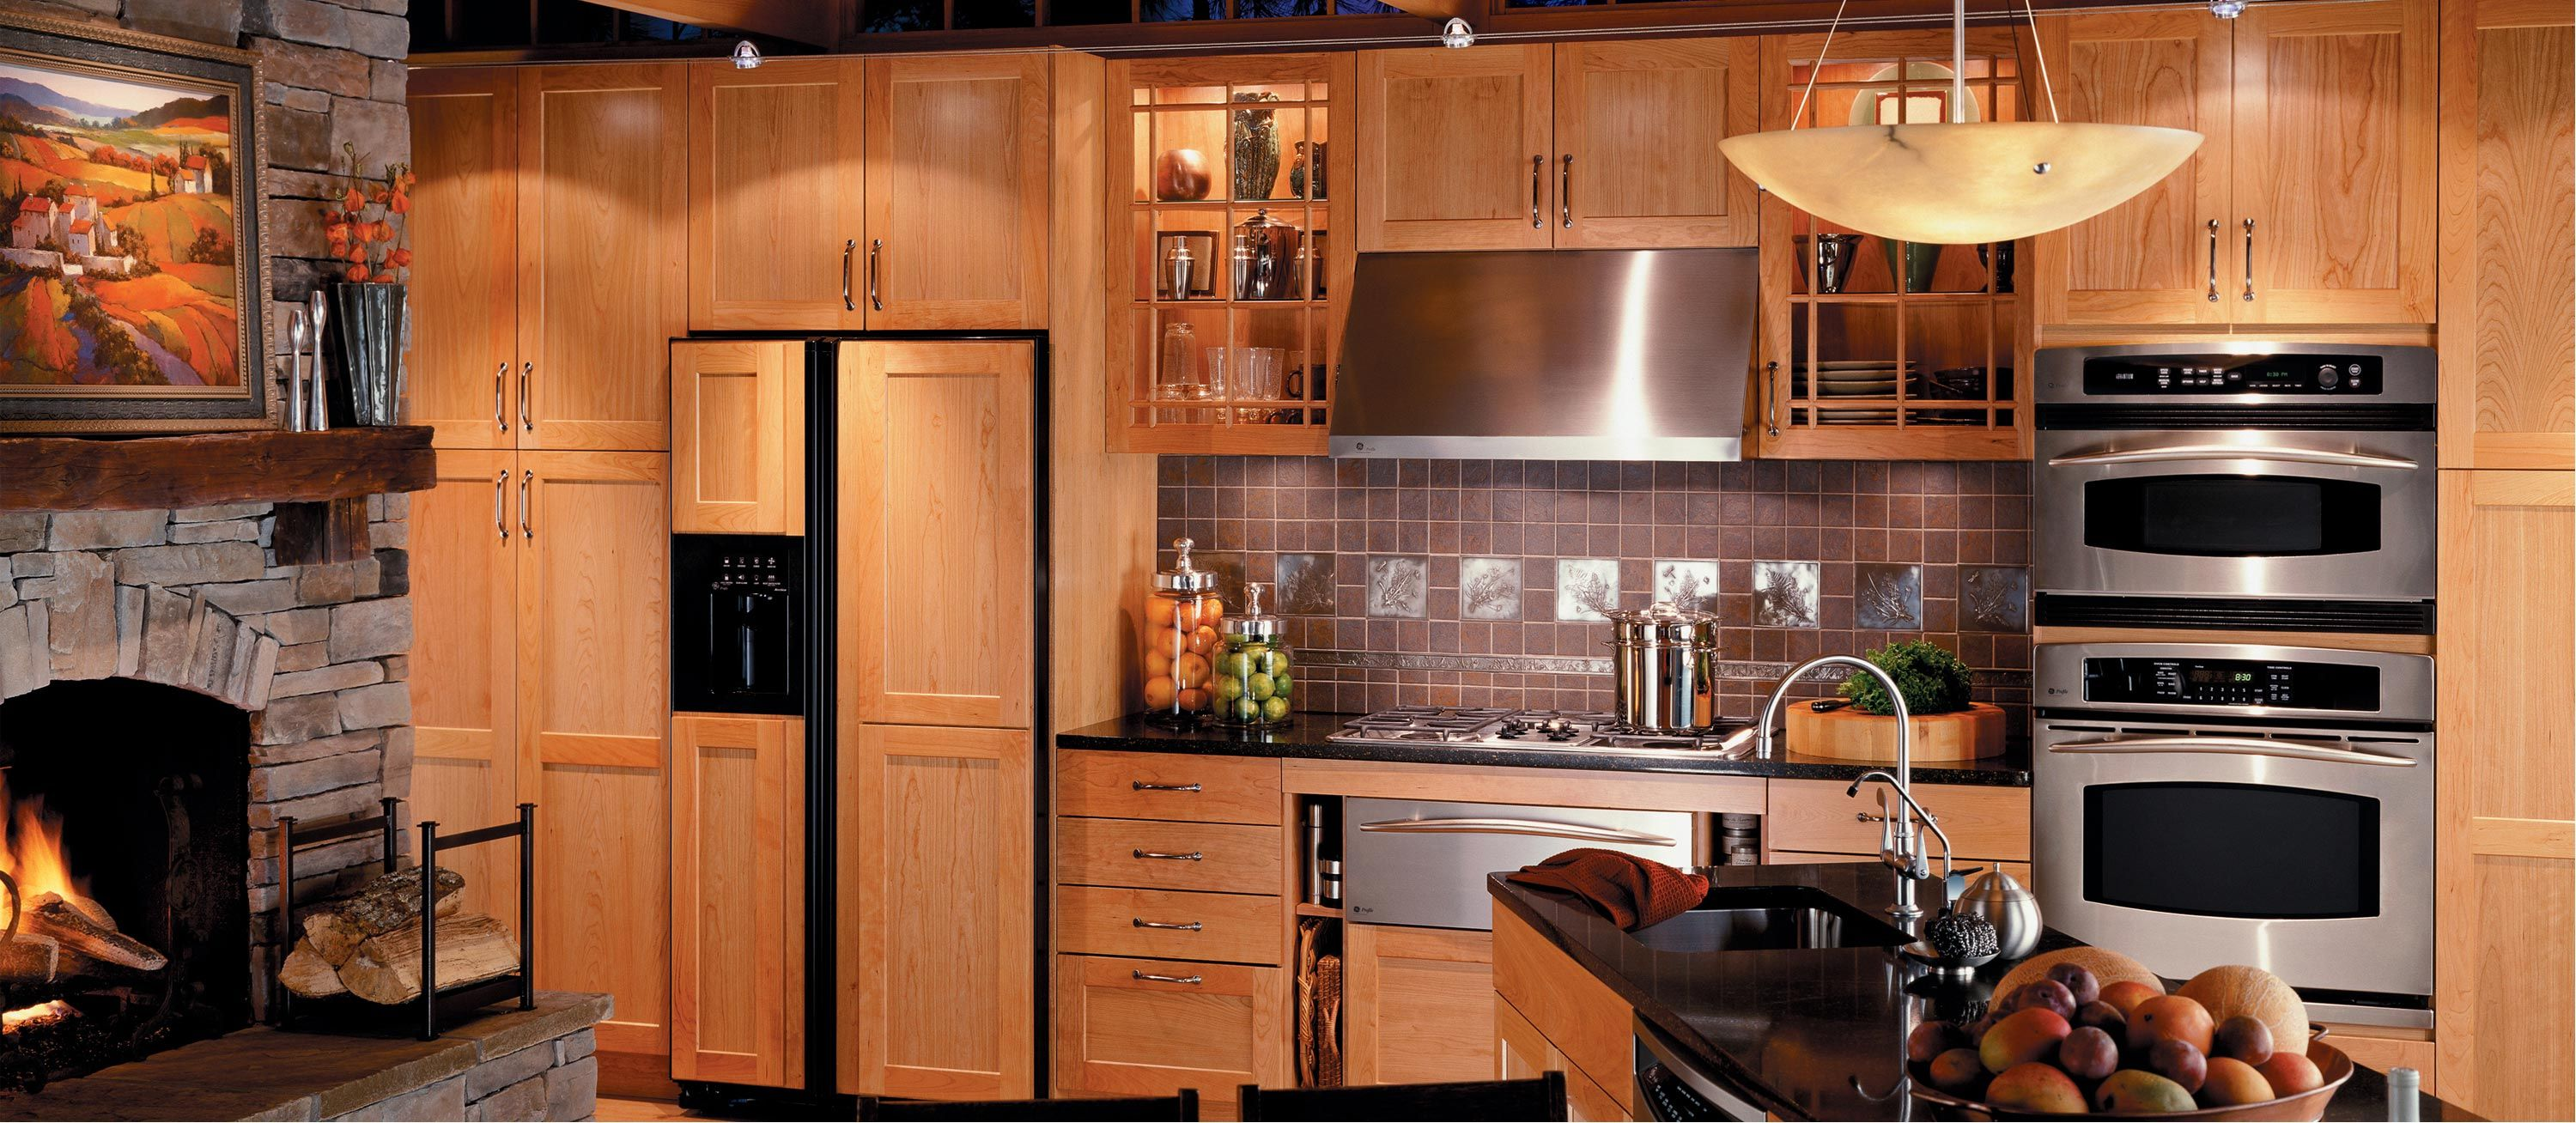 Kitchen, Traditional Kitchen Design Layout With Wooden